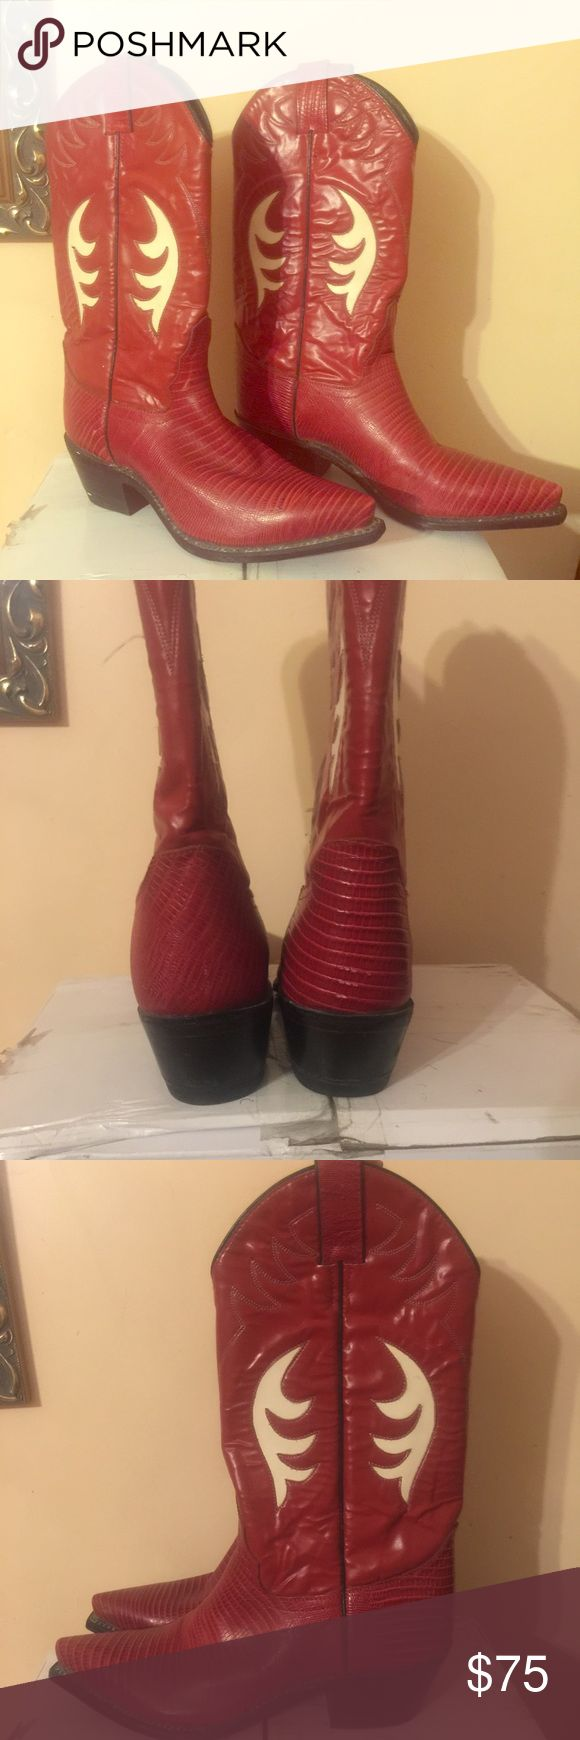 Justin Diamond J women's cowboy boots Beautiful red all leather tall cowgirl boots. Pointy toe, size 7B. Great condition Justin Boots Shoes Heeled Boots